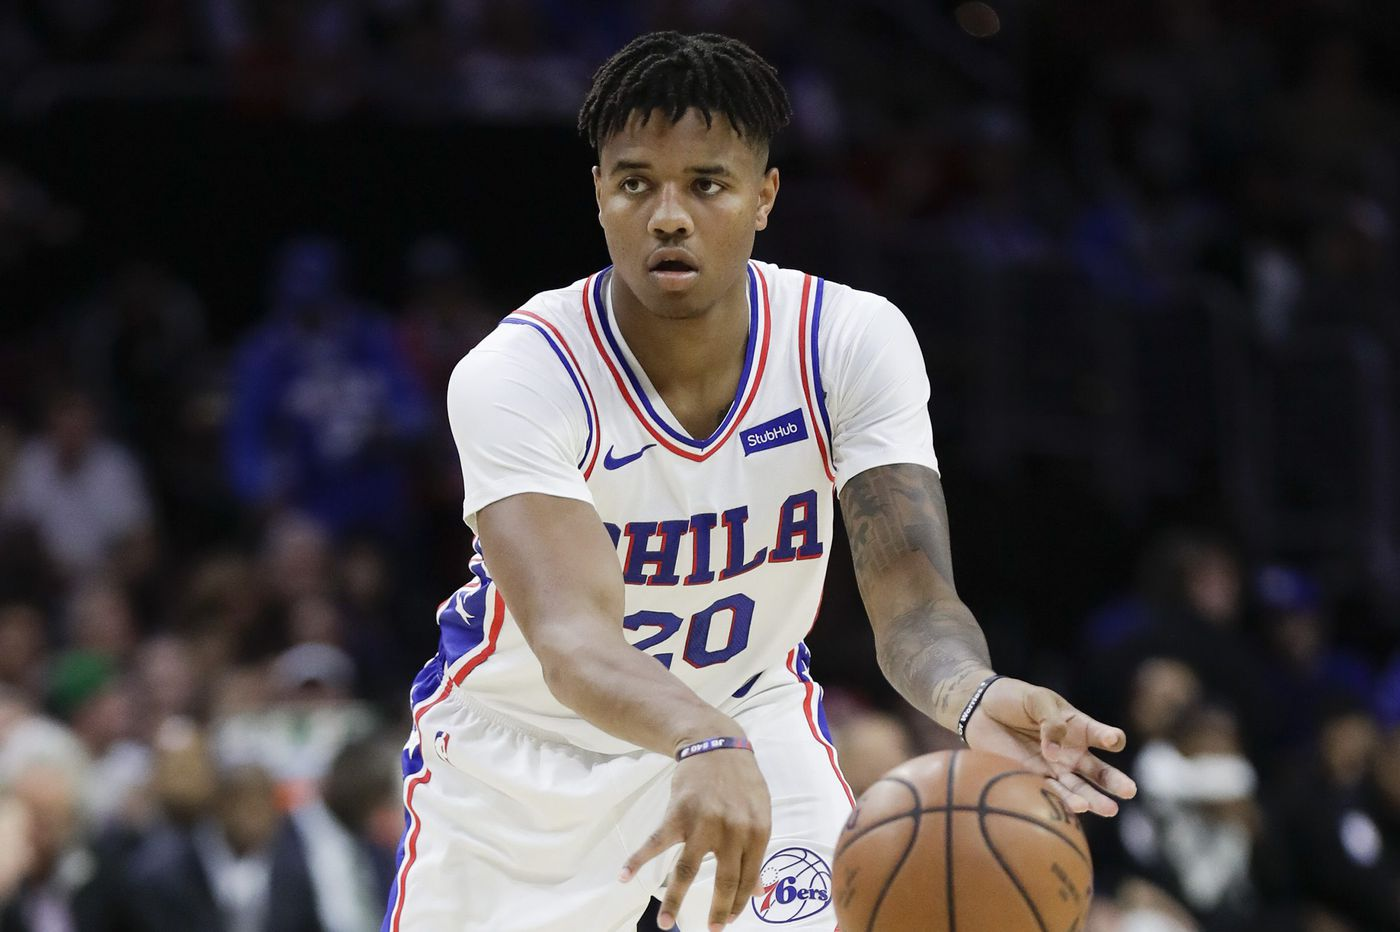 Markelle Fultz tried to shoot a free throw. The video shows it did not go well.